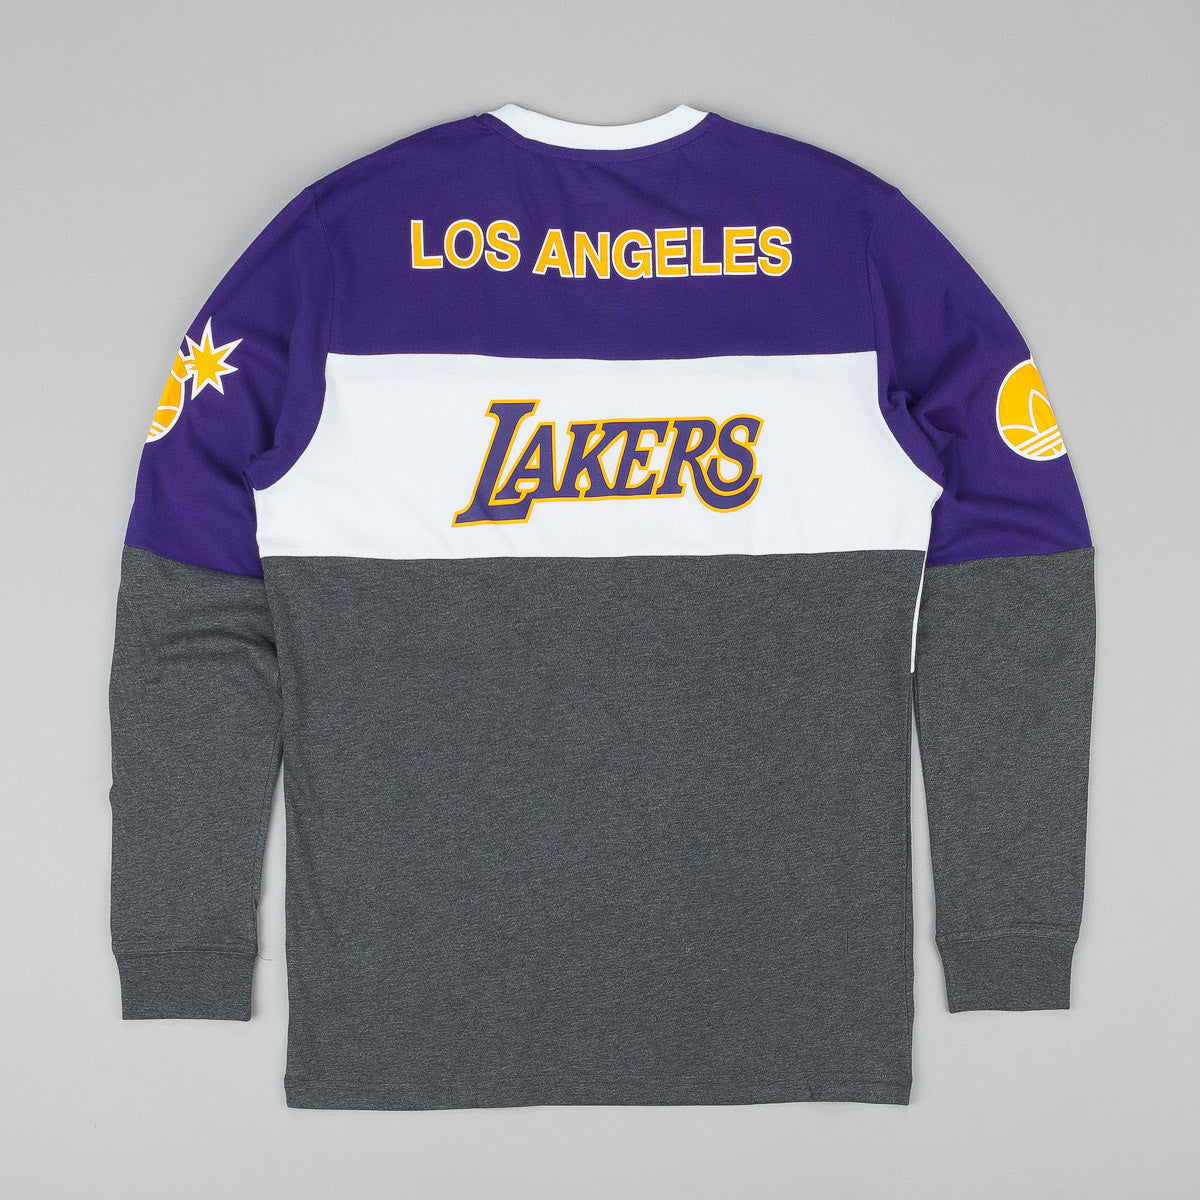 Adidas x NBA x The Hundreds LA Long Sleeve T-Shirt - Regal Purple / White / Dark Grey Heather